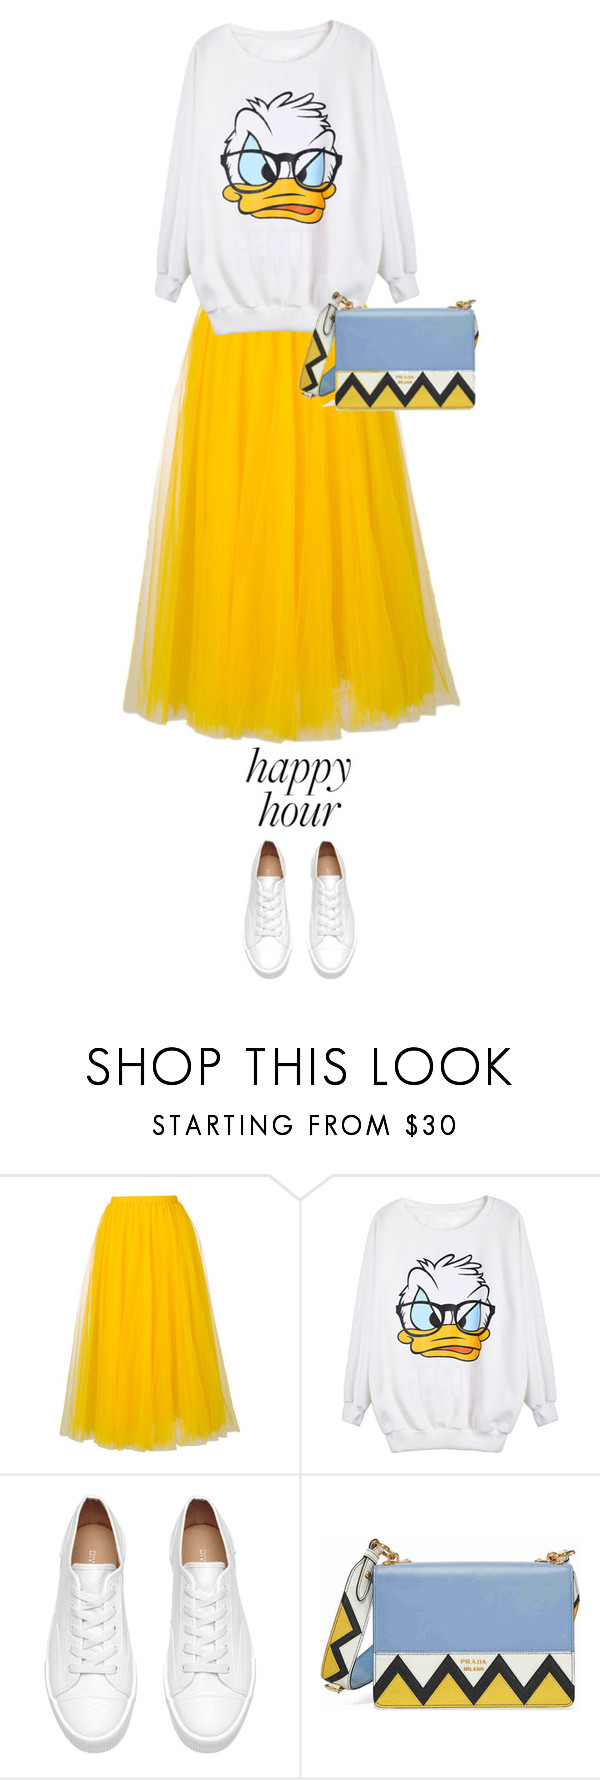 """""""happy hour"""" by ecem1 ❤ liked on Polyvore featuring Rochas and Prada"""